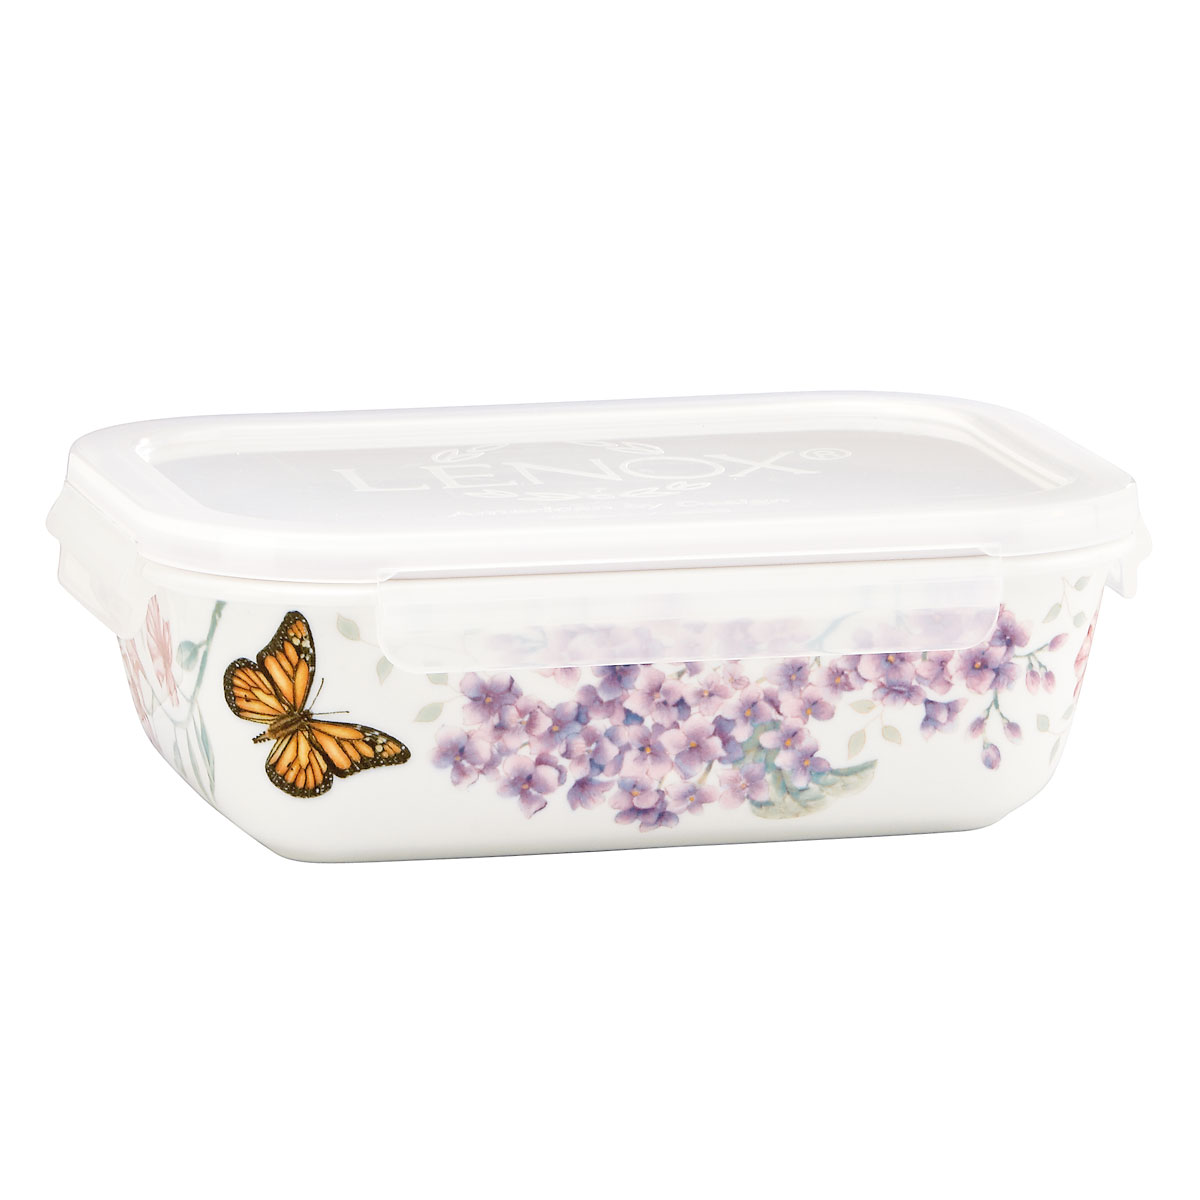 Lenox Butterfly Meadow Dinnerware Rectangular Serving And Store